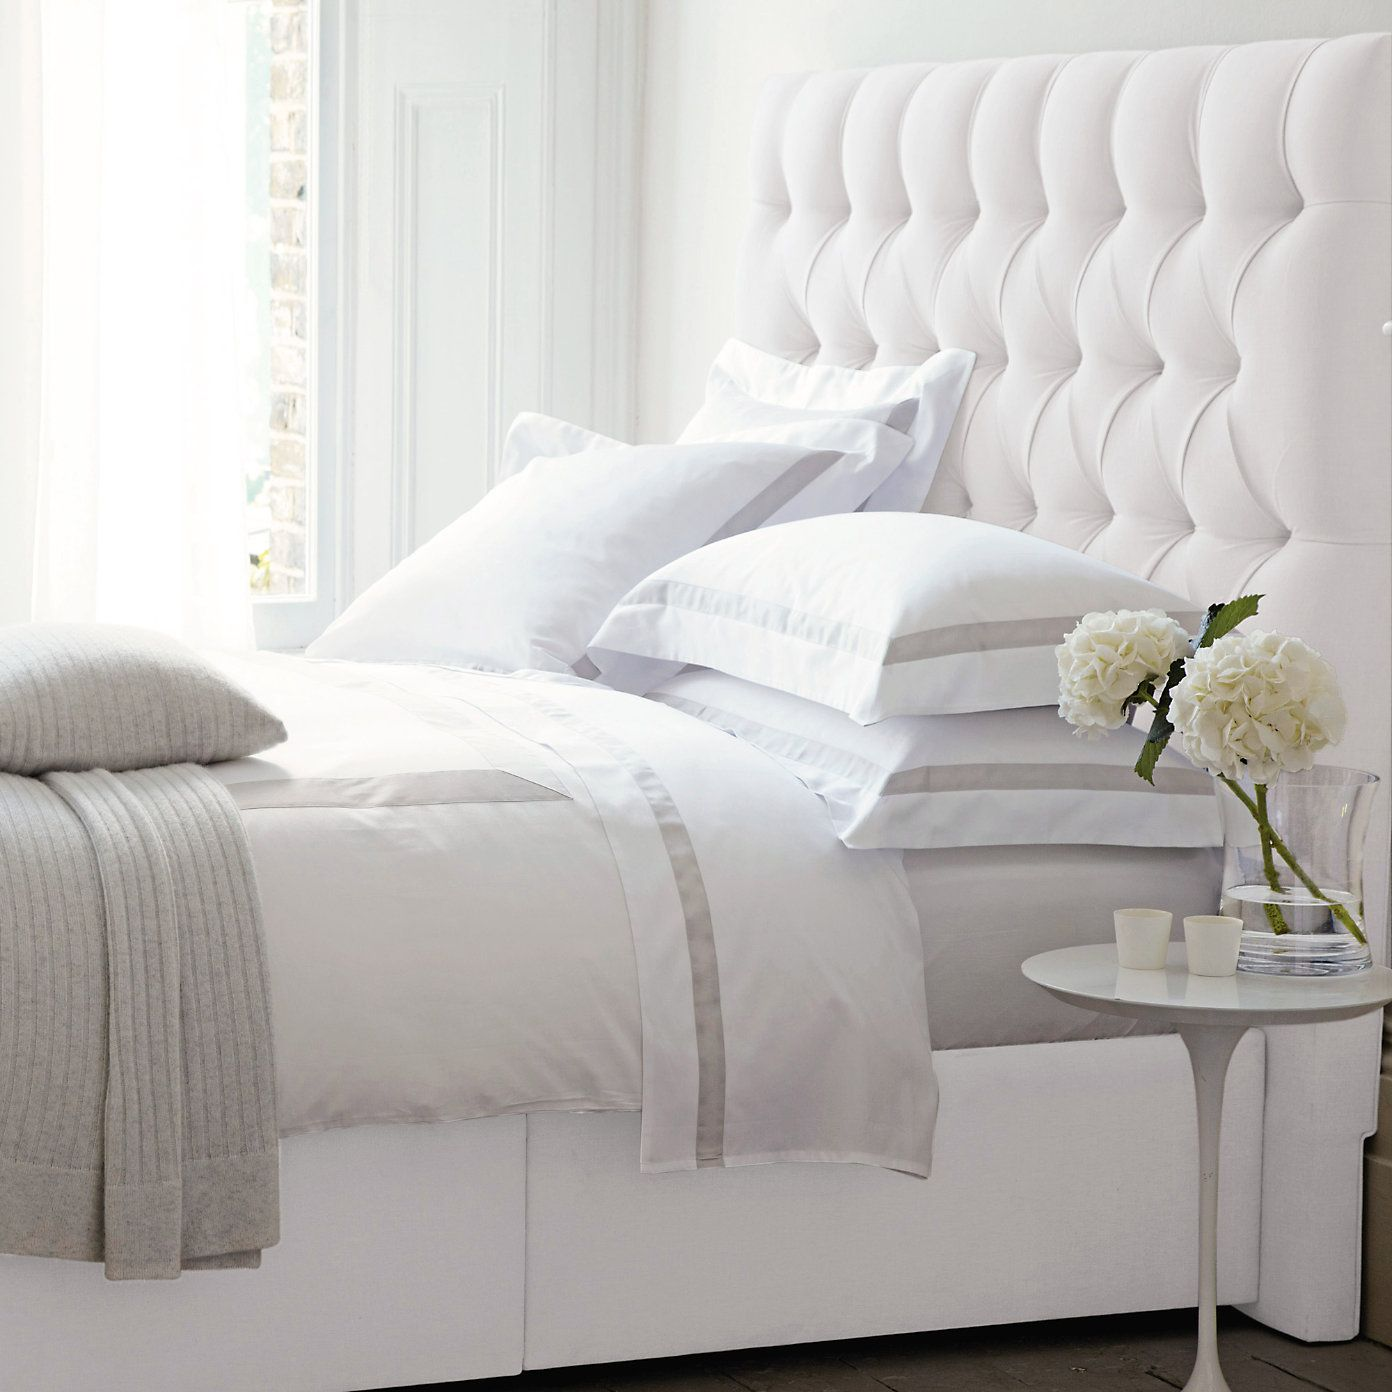 Richmond Bedroom Furniture Range Richmond Headboard Beds The White Company For Peter Pan